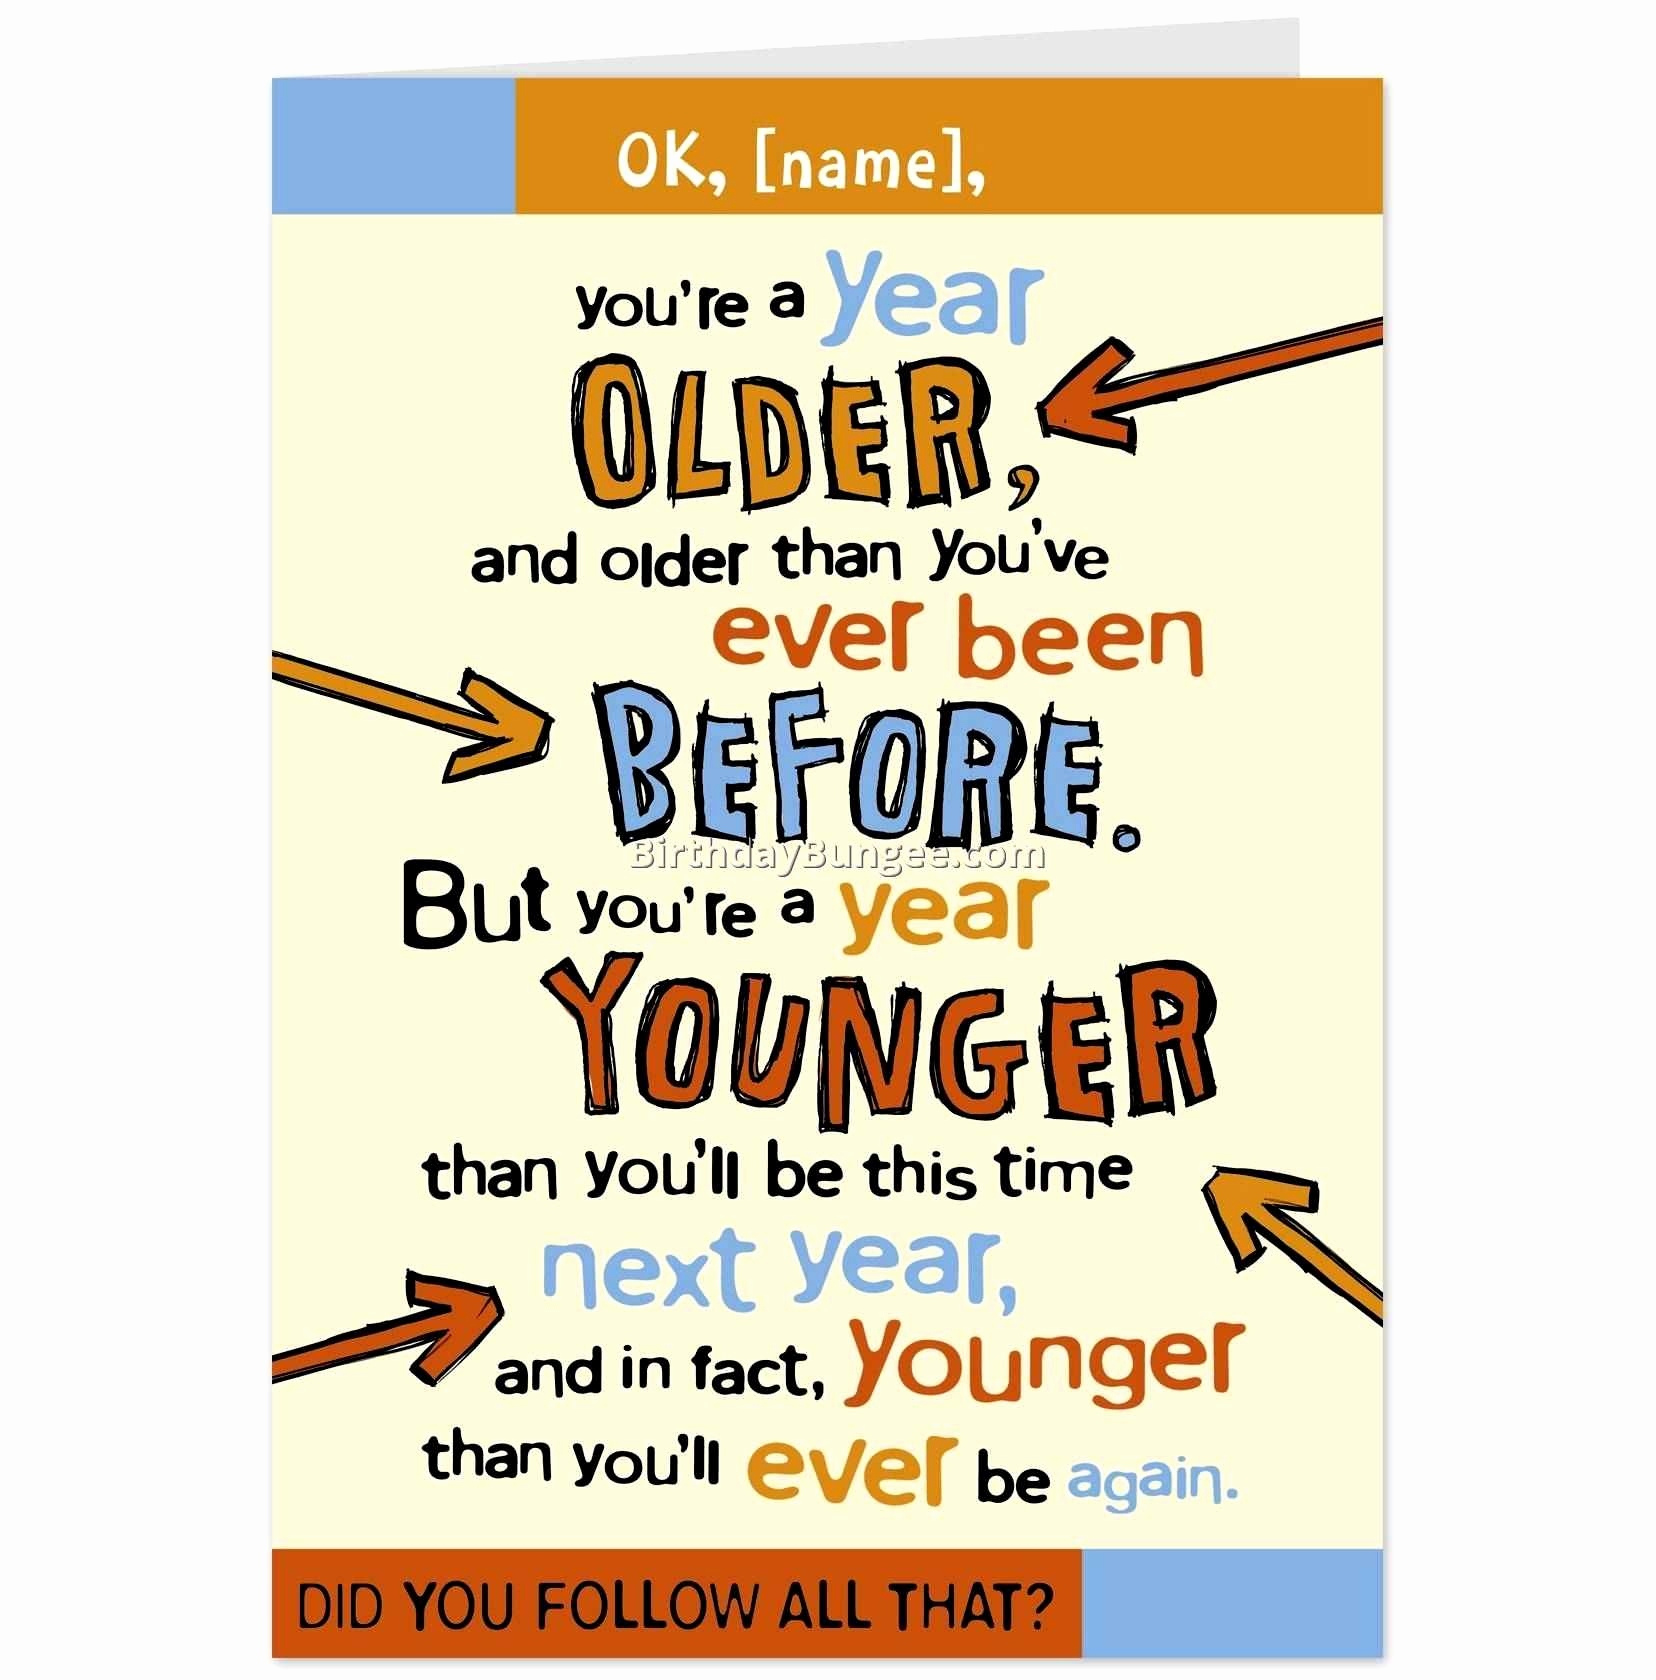 humorous birthday card sayings ; birthday-card-ideas-for-dad-new-funny-birthday-card-sayings-for-dad-linksof-london-of-birthday-card-ideas-for-dad